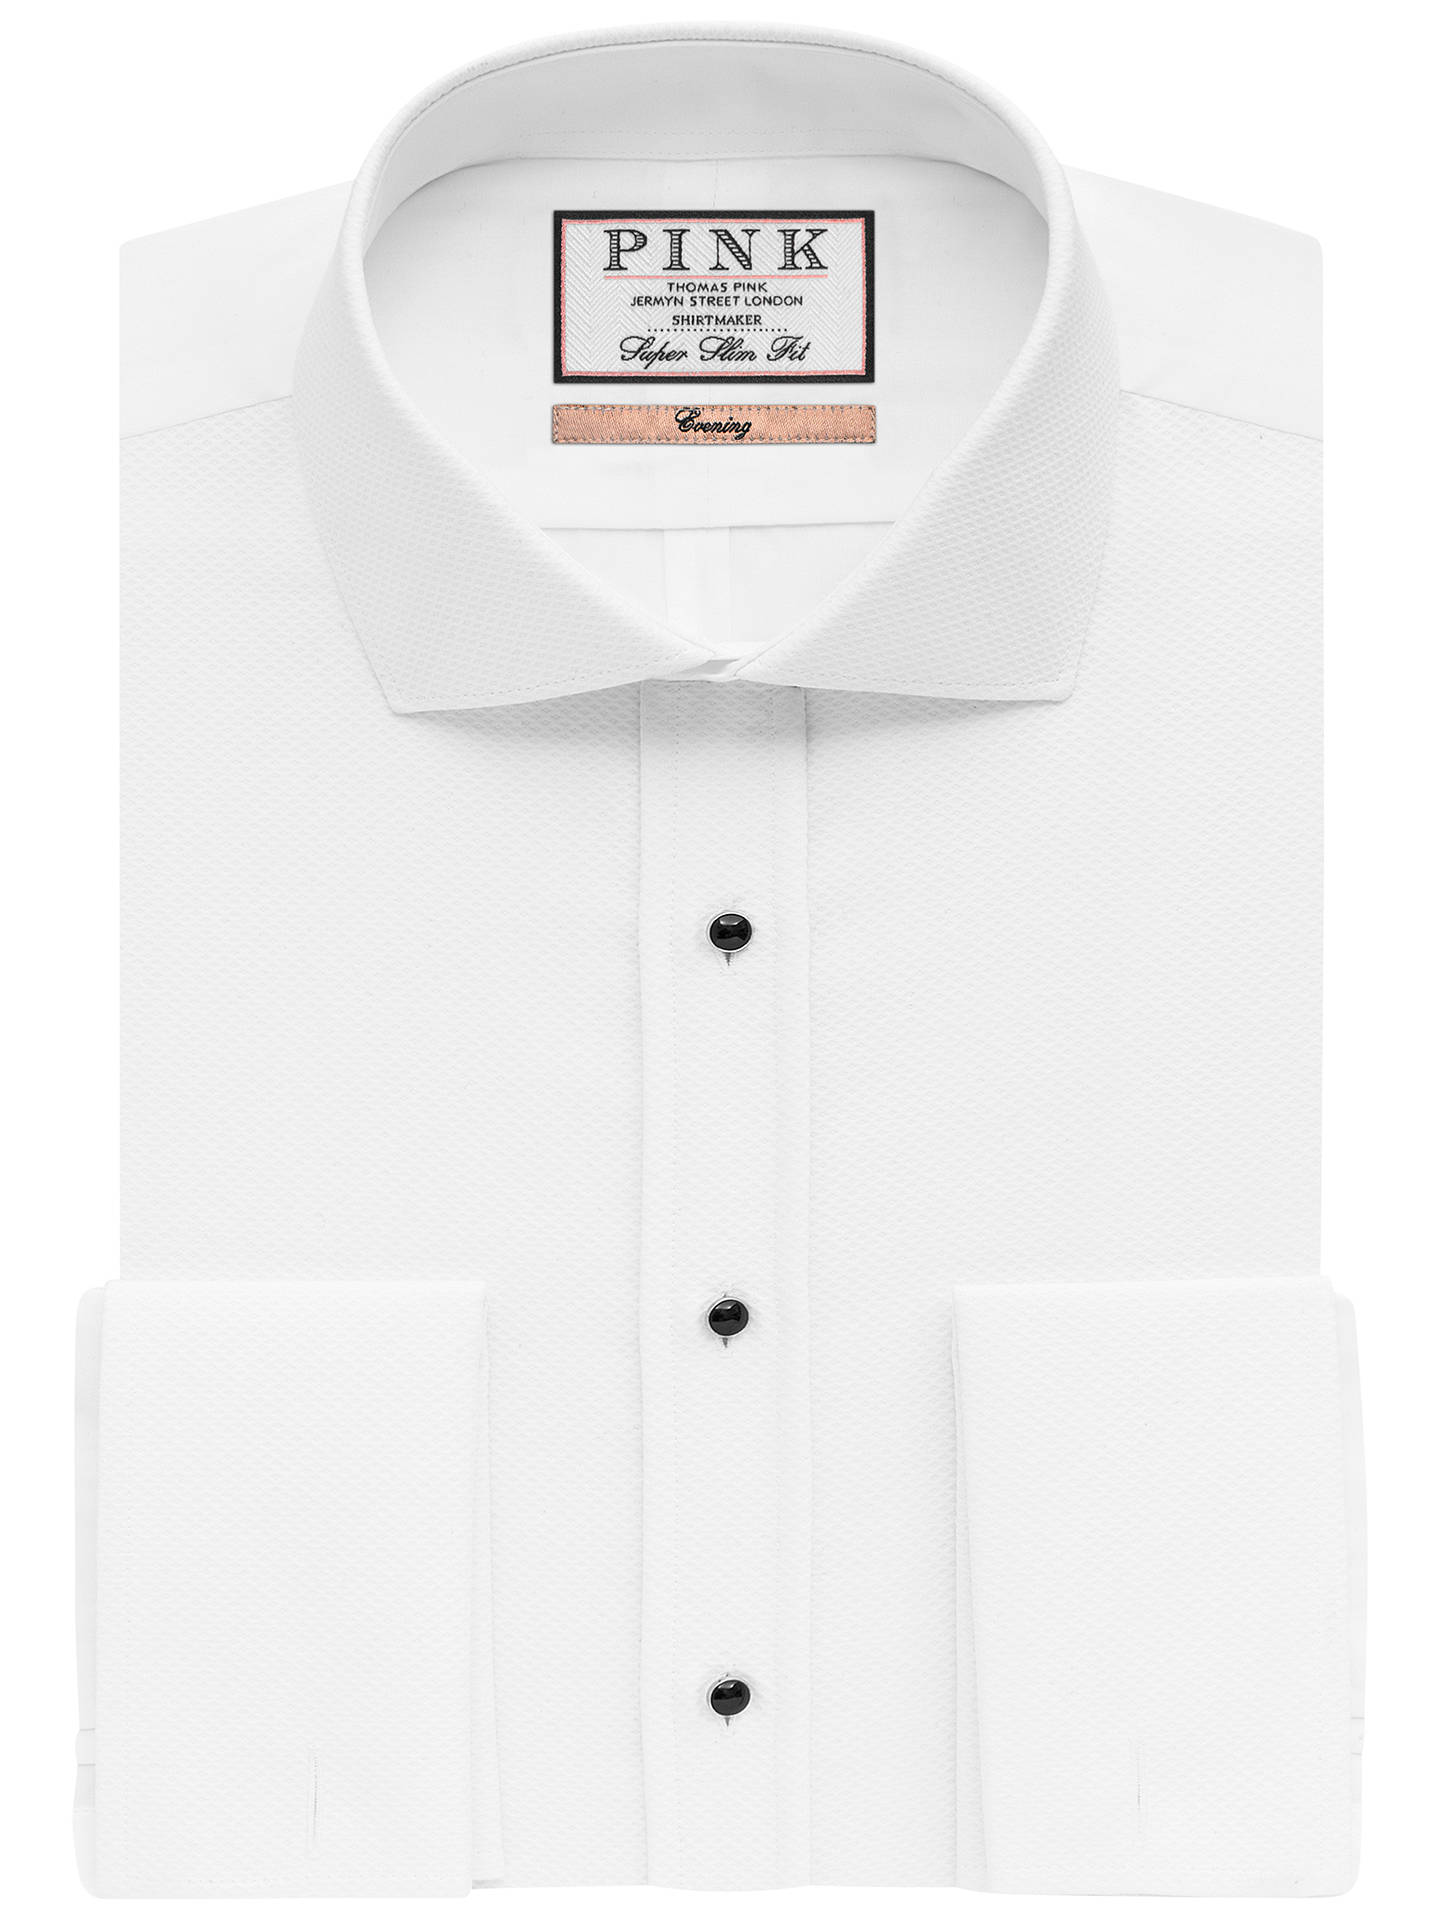 Buy Thomas Pink Marcella Super Slim Fit Dress Shirt, White, 14 Online at johnlewis.com